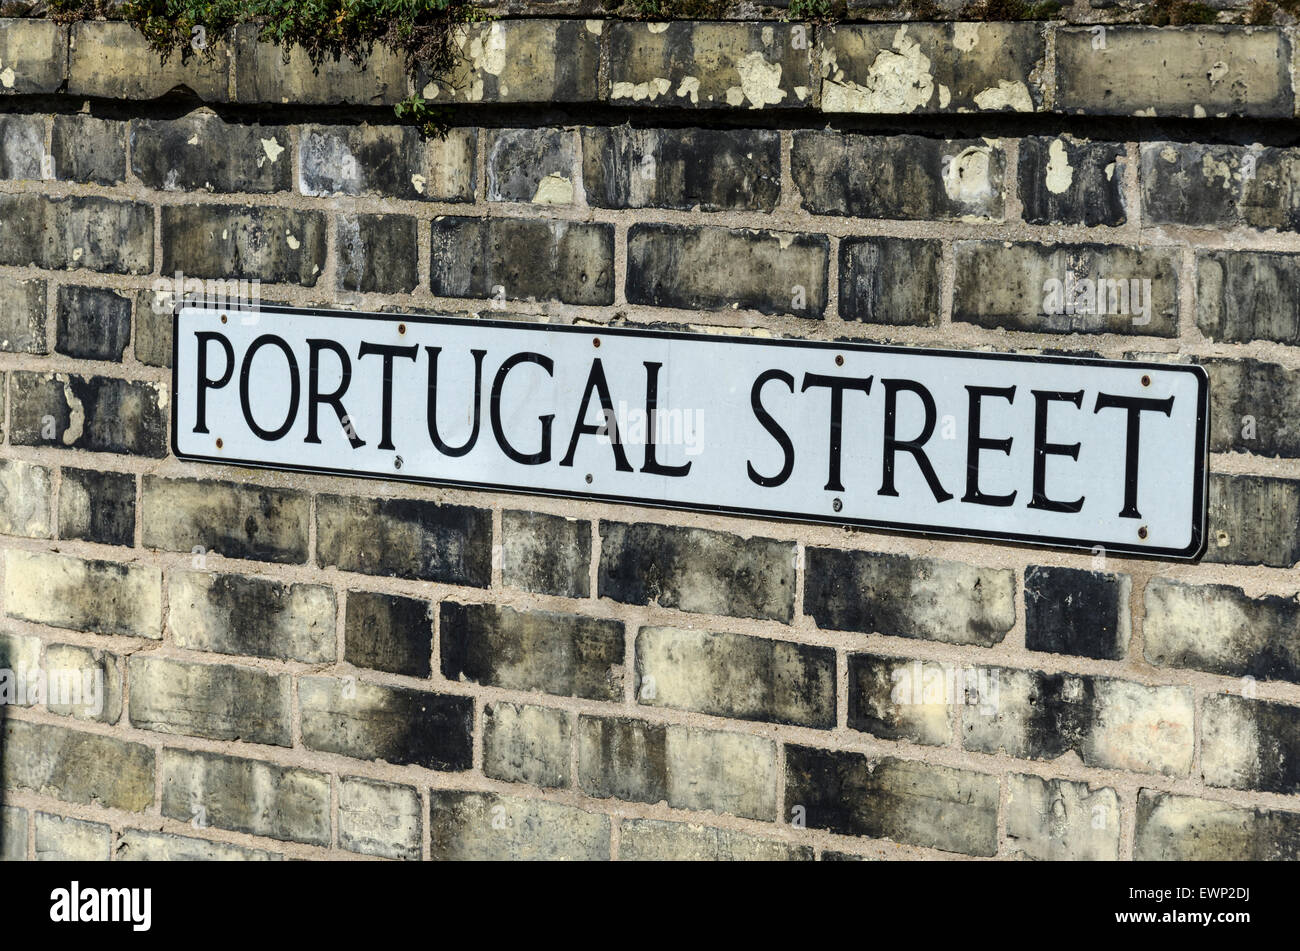 Portugal Street road sign on a brick wall in Cambridge Stock Photo